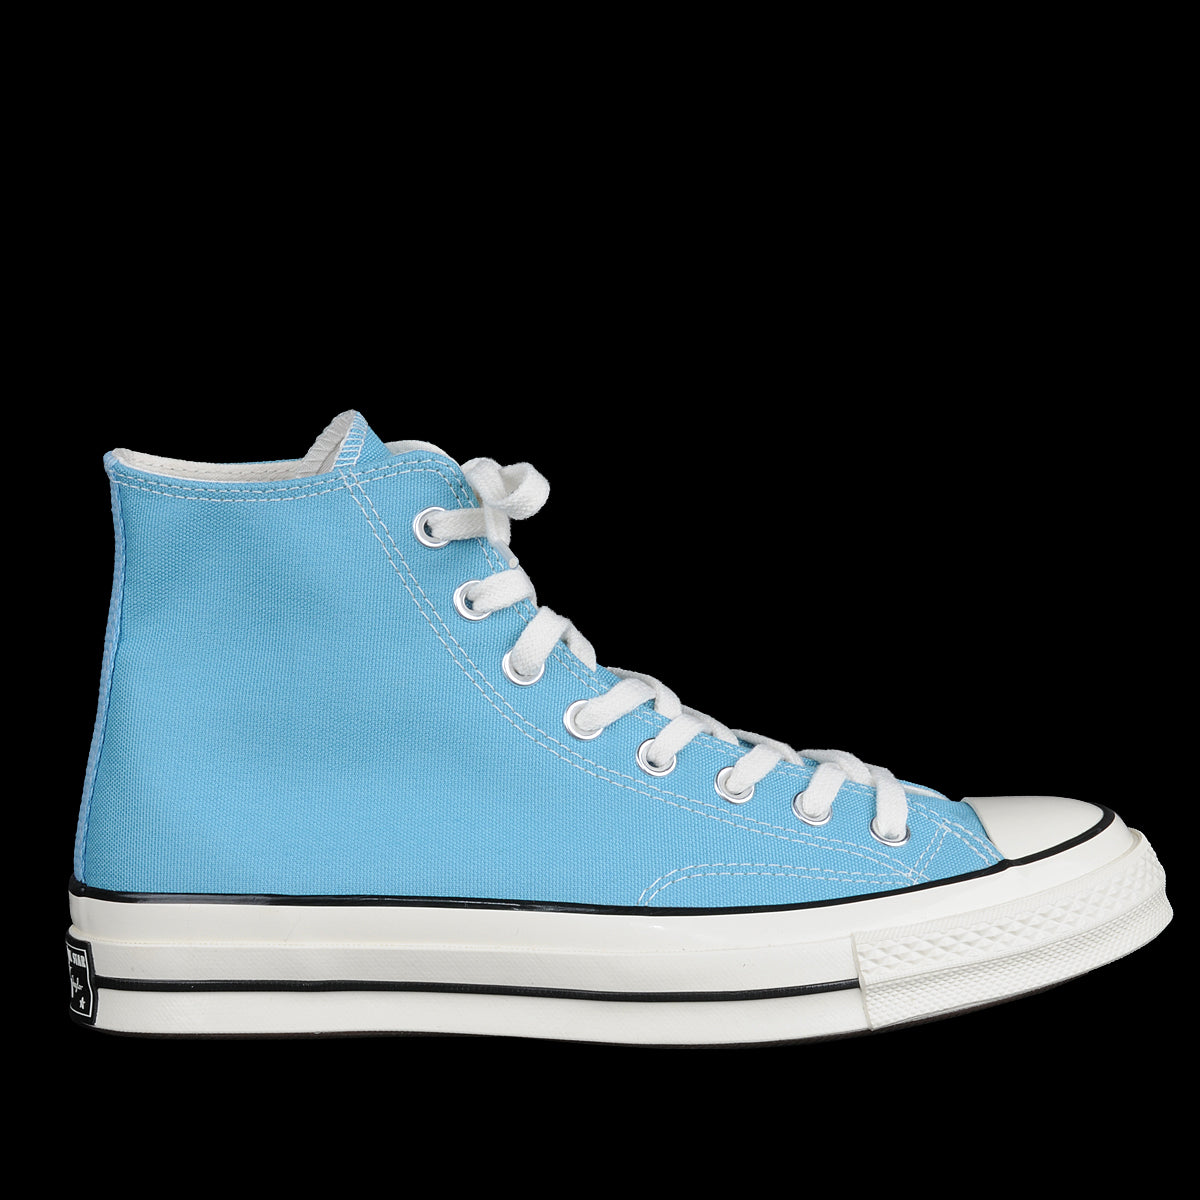 Converse - Chuck Taylor All Star 70 Hi in Shoreline Blue - UNIONMADE f53fa7427